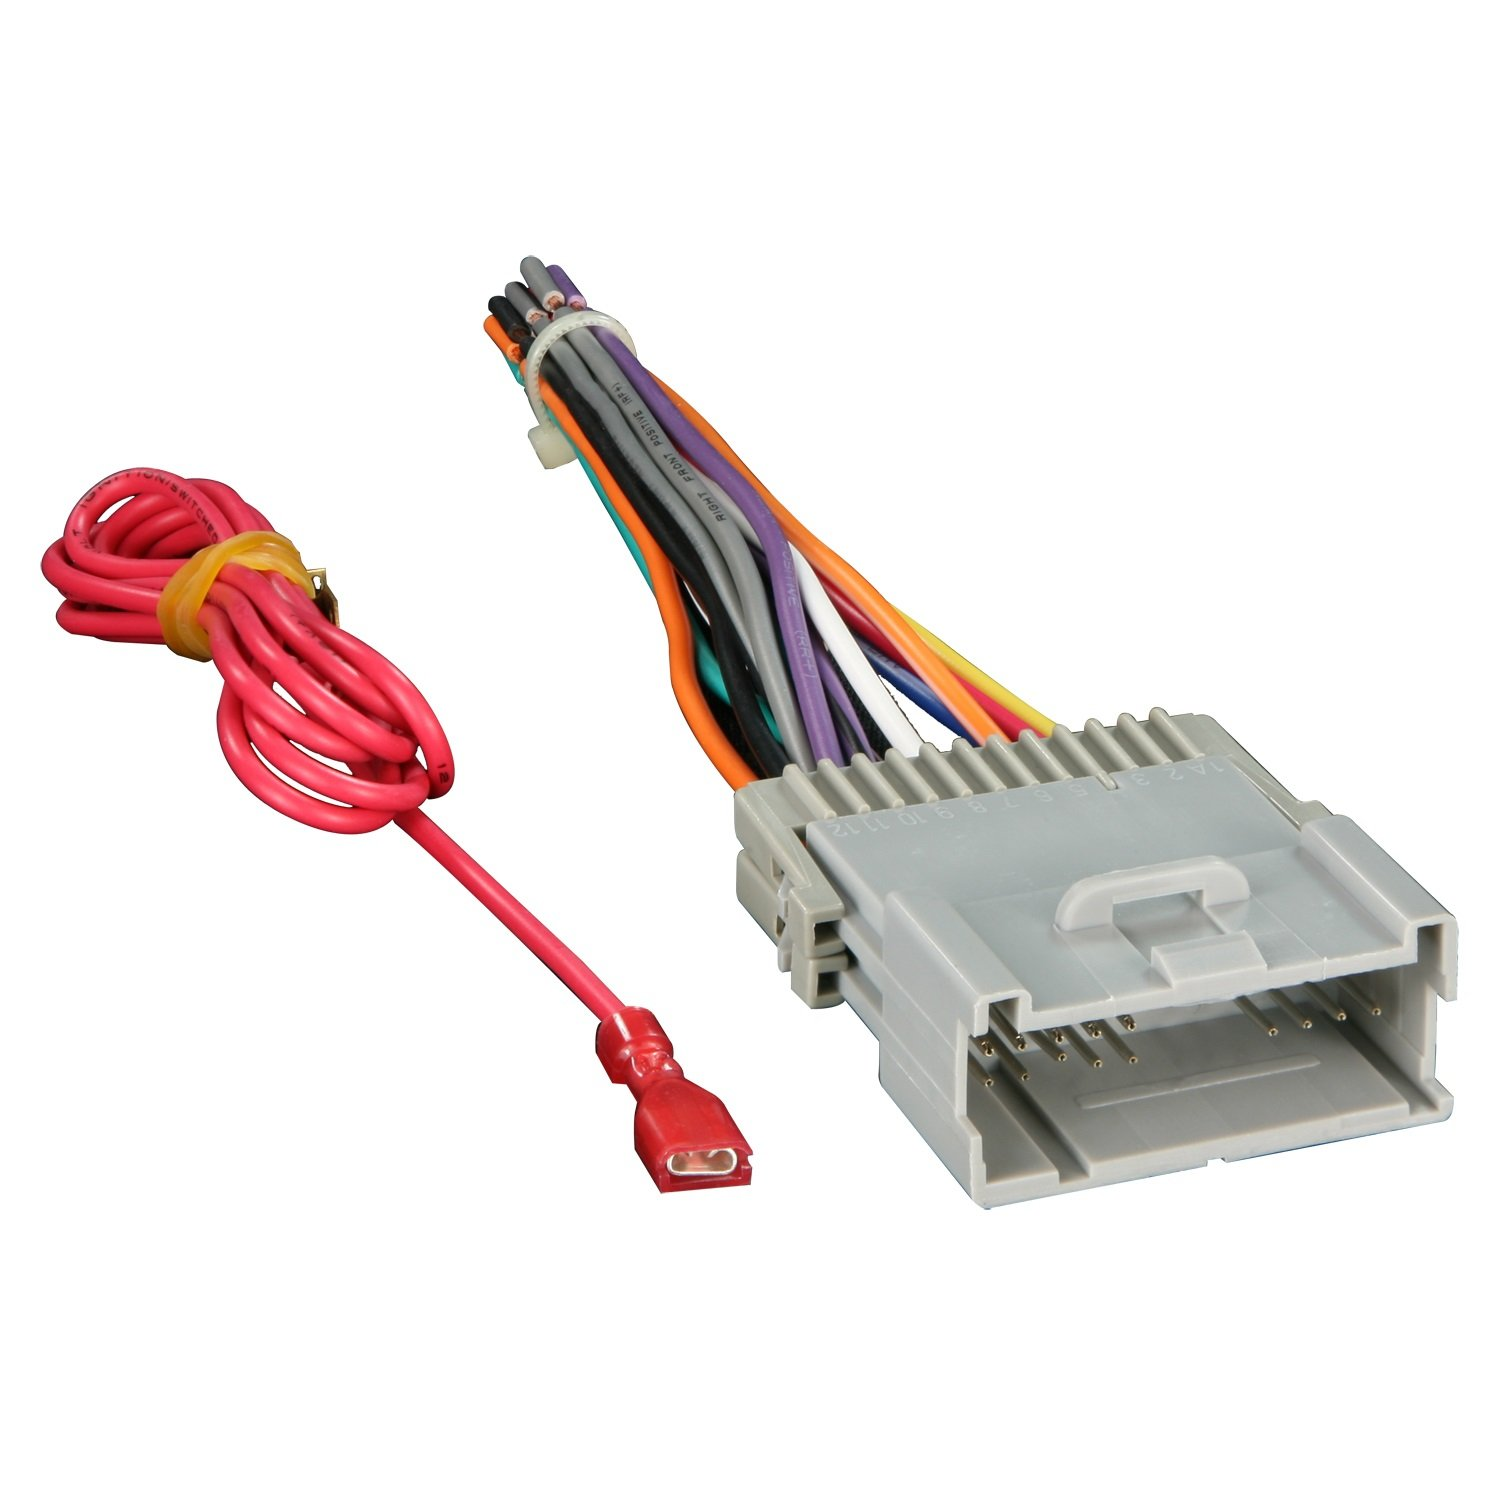 61eewxp9orL._SL1500_ amazon com metra 70 2003 radio wiring harness for gm 98 08  at webbmarketing.co